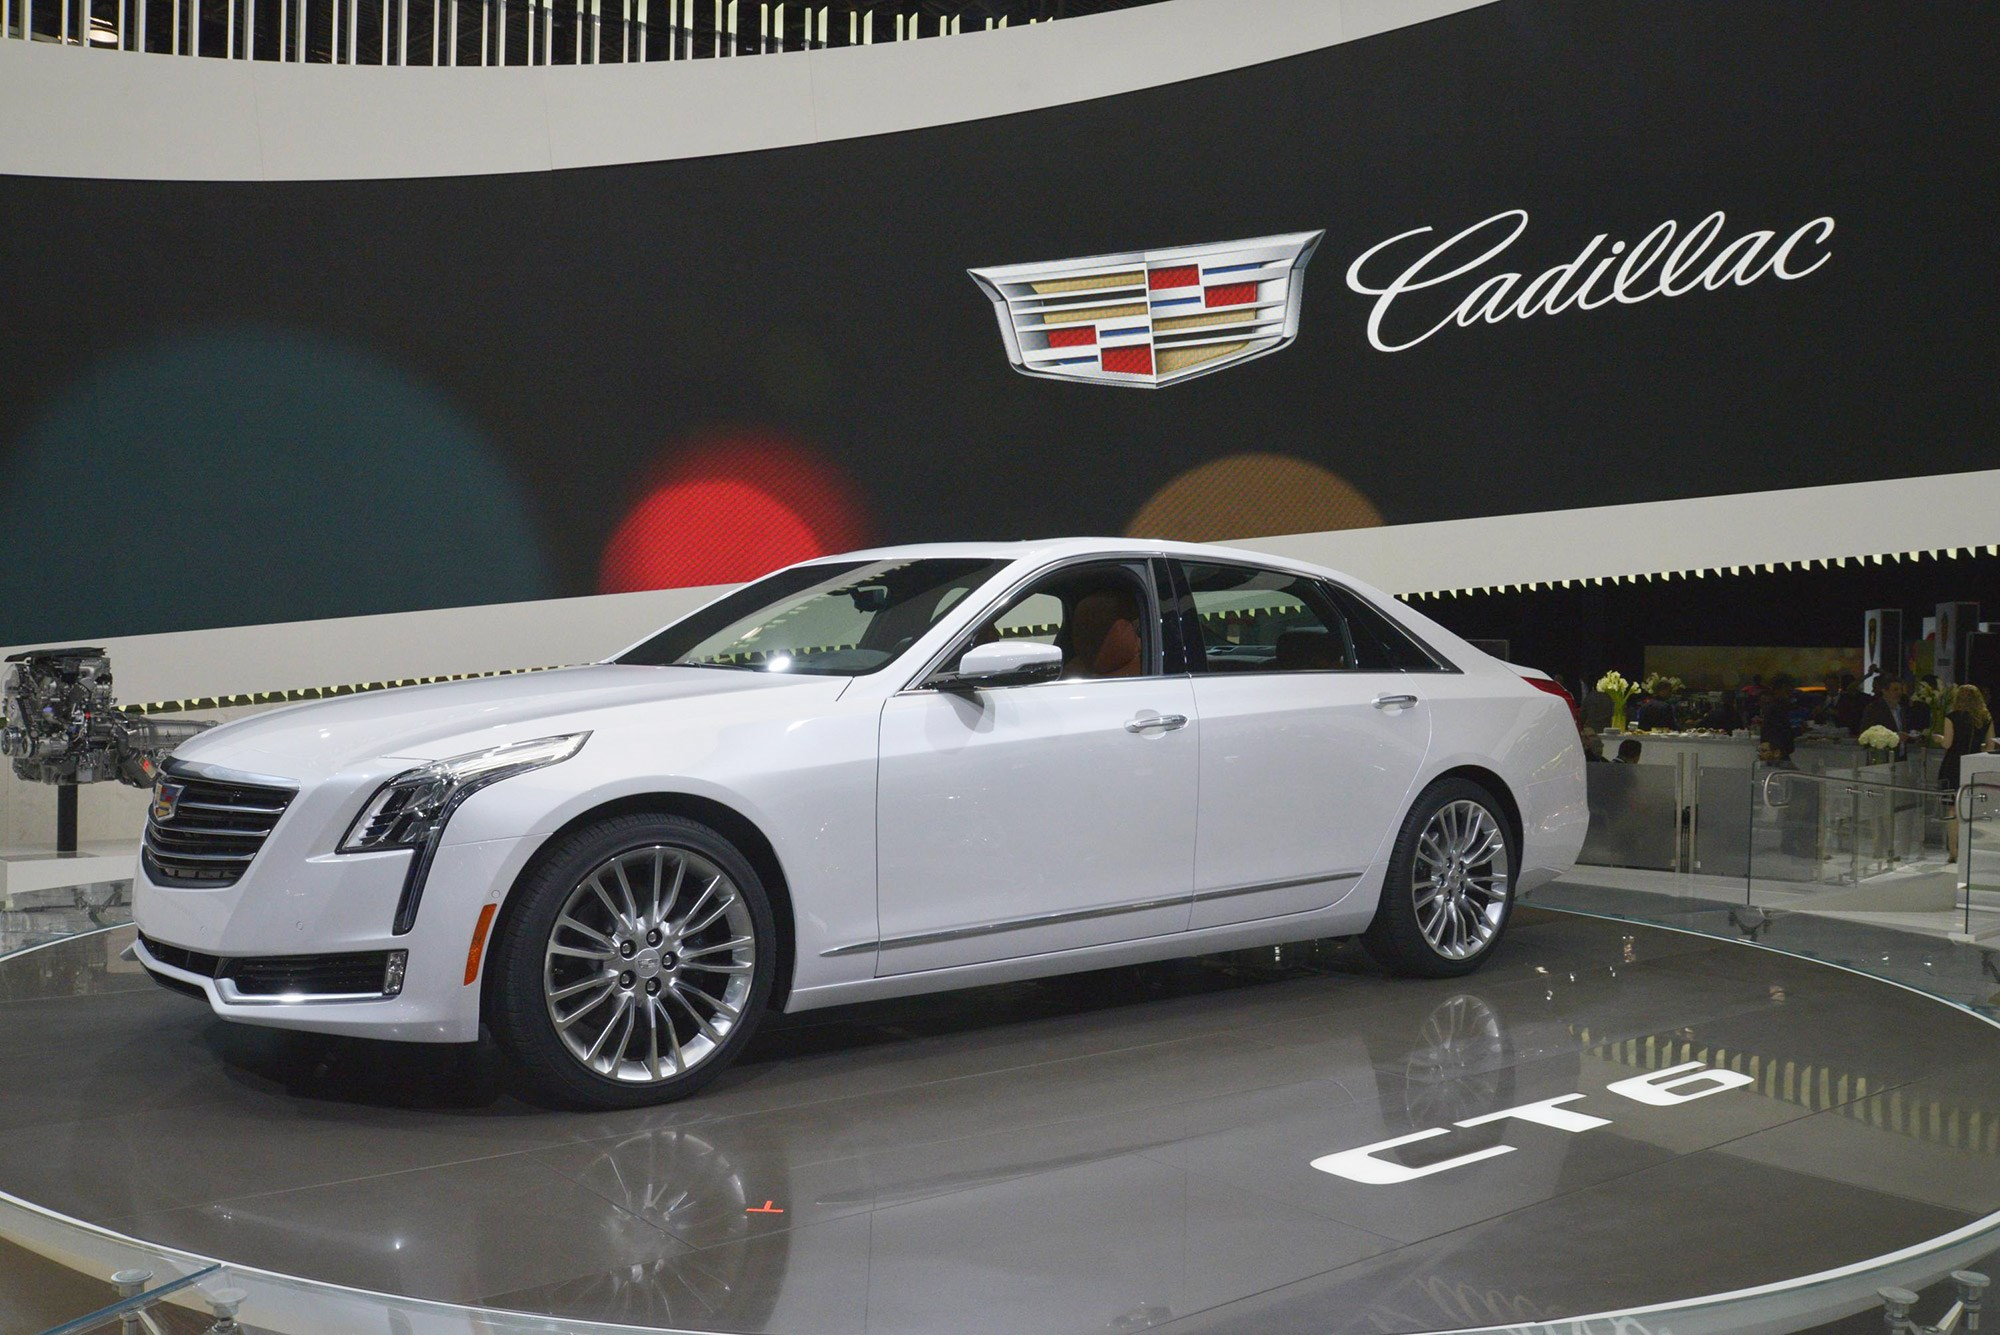 cadillac ct6 arrives at new york should the s class be worried by car magazine. Black Bedroom Furniture Sets. Home Design Ideas